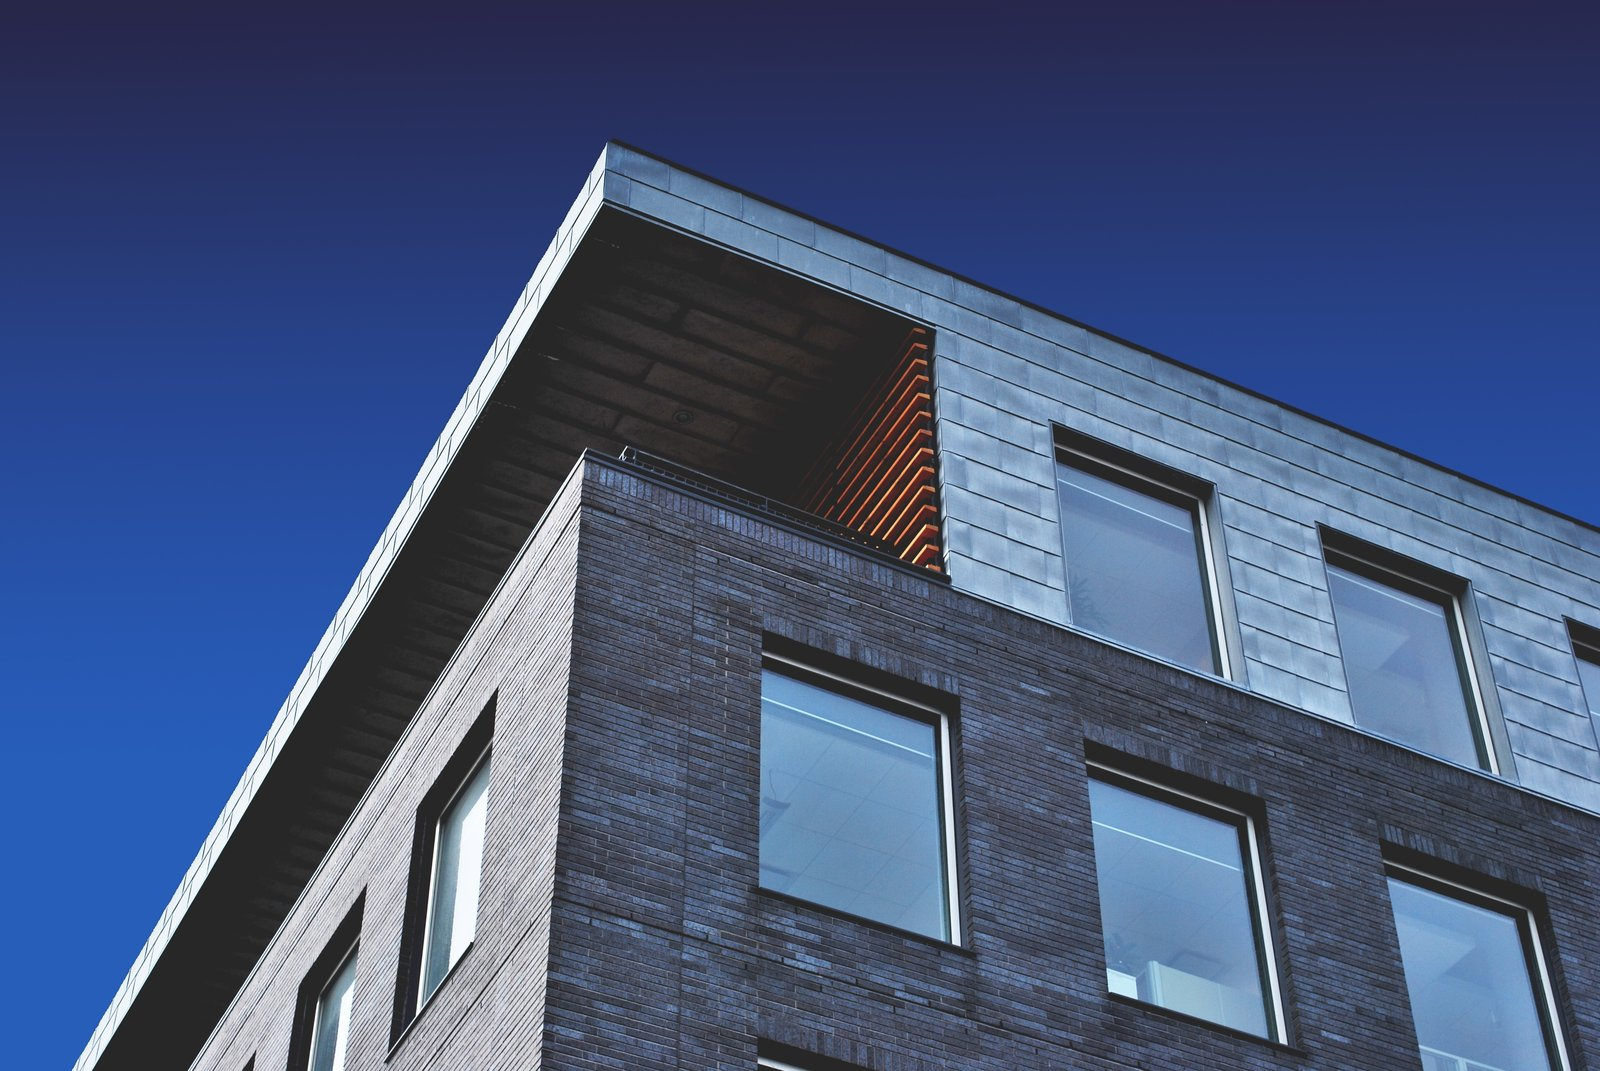 5 Top Tips for Building a New Home & 5 Top Tips for Building a New Home - Dwell